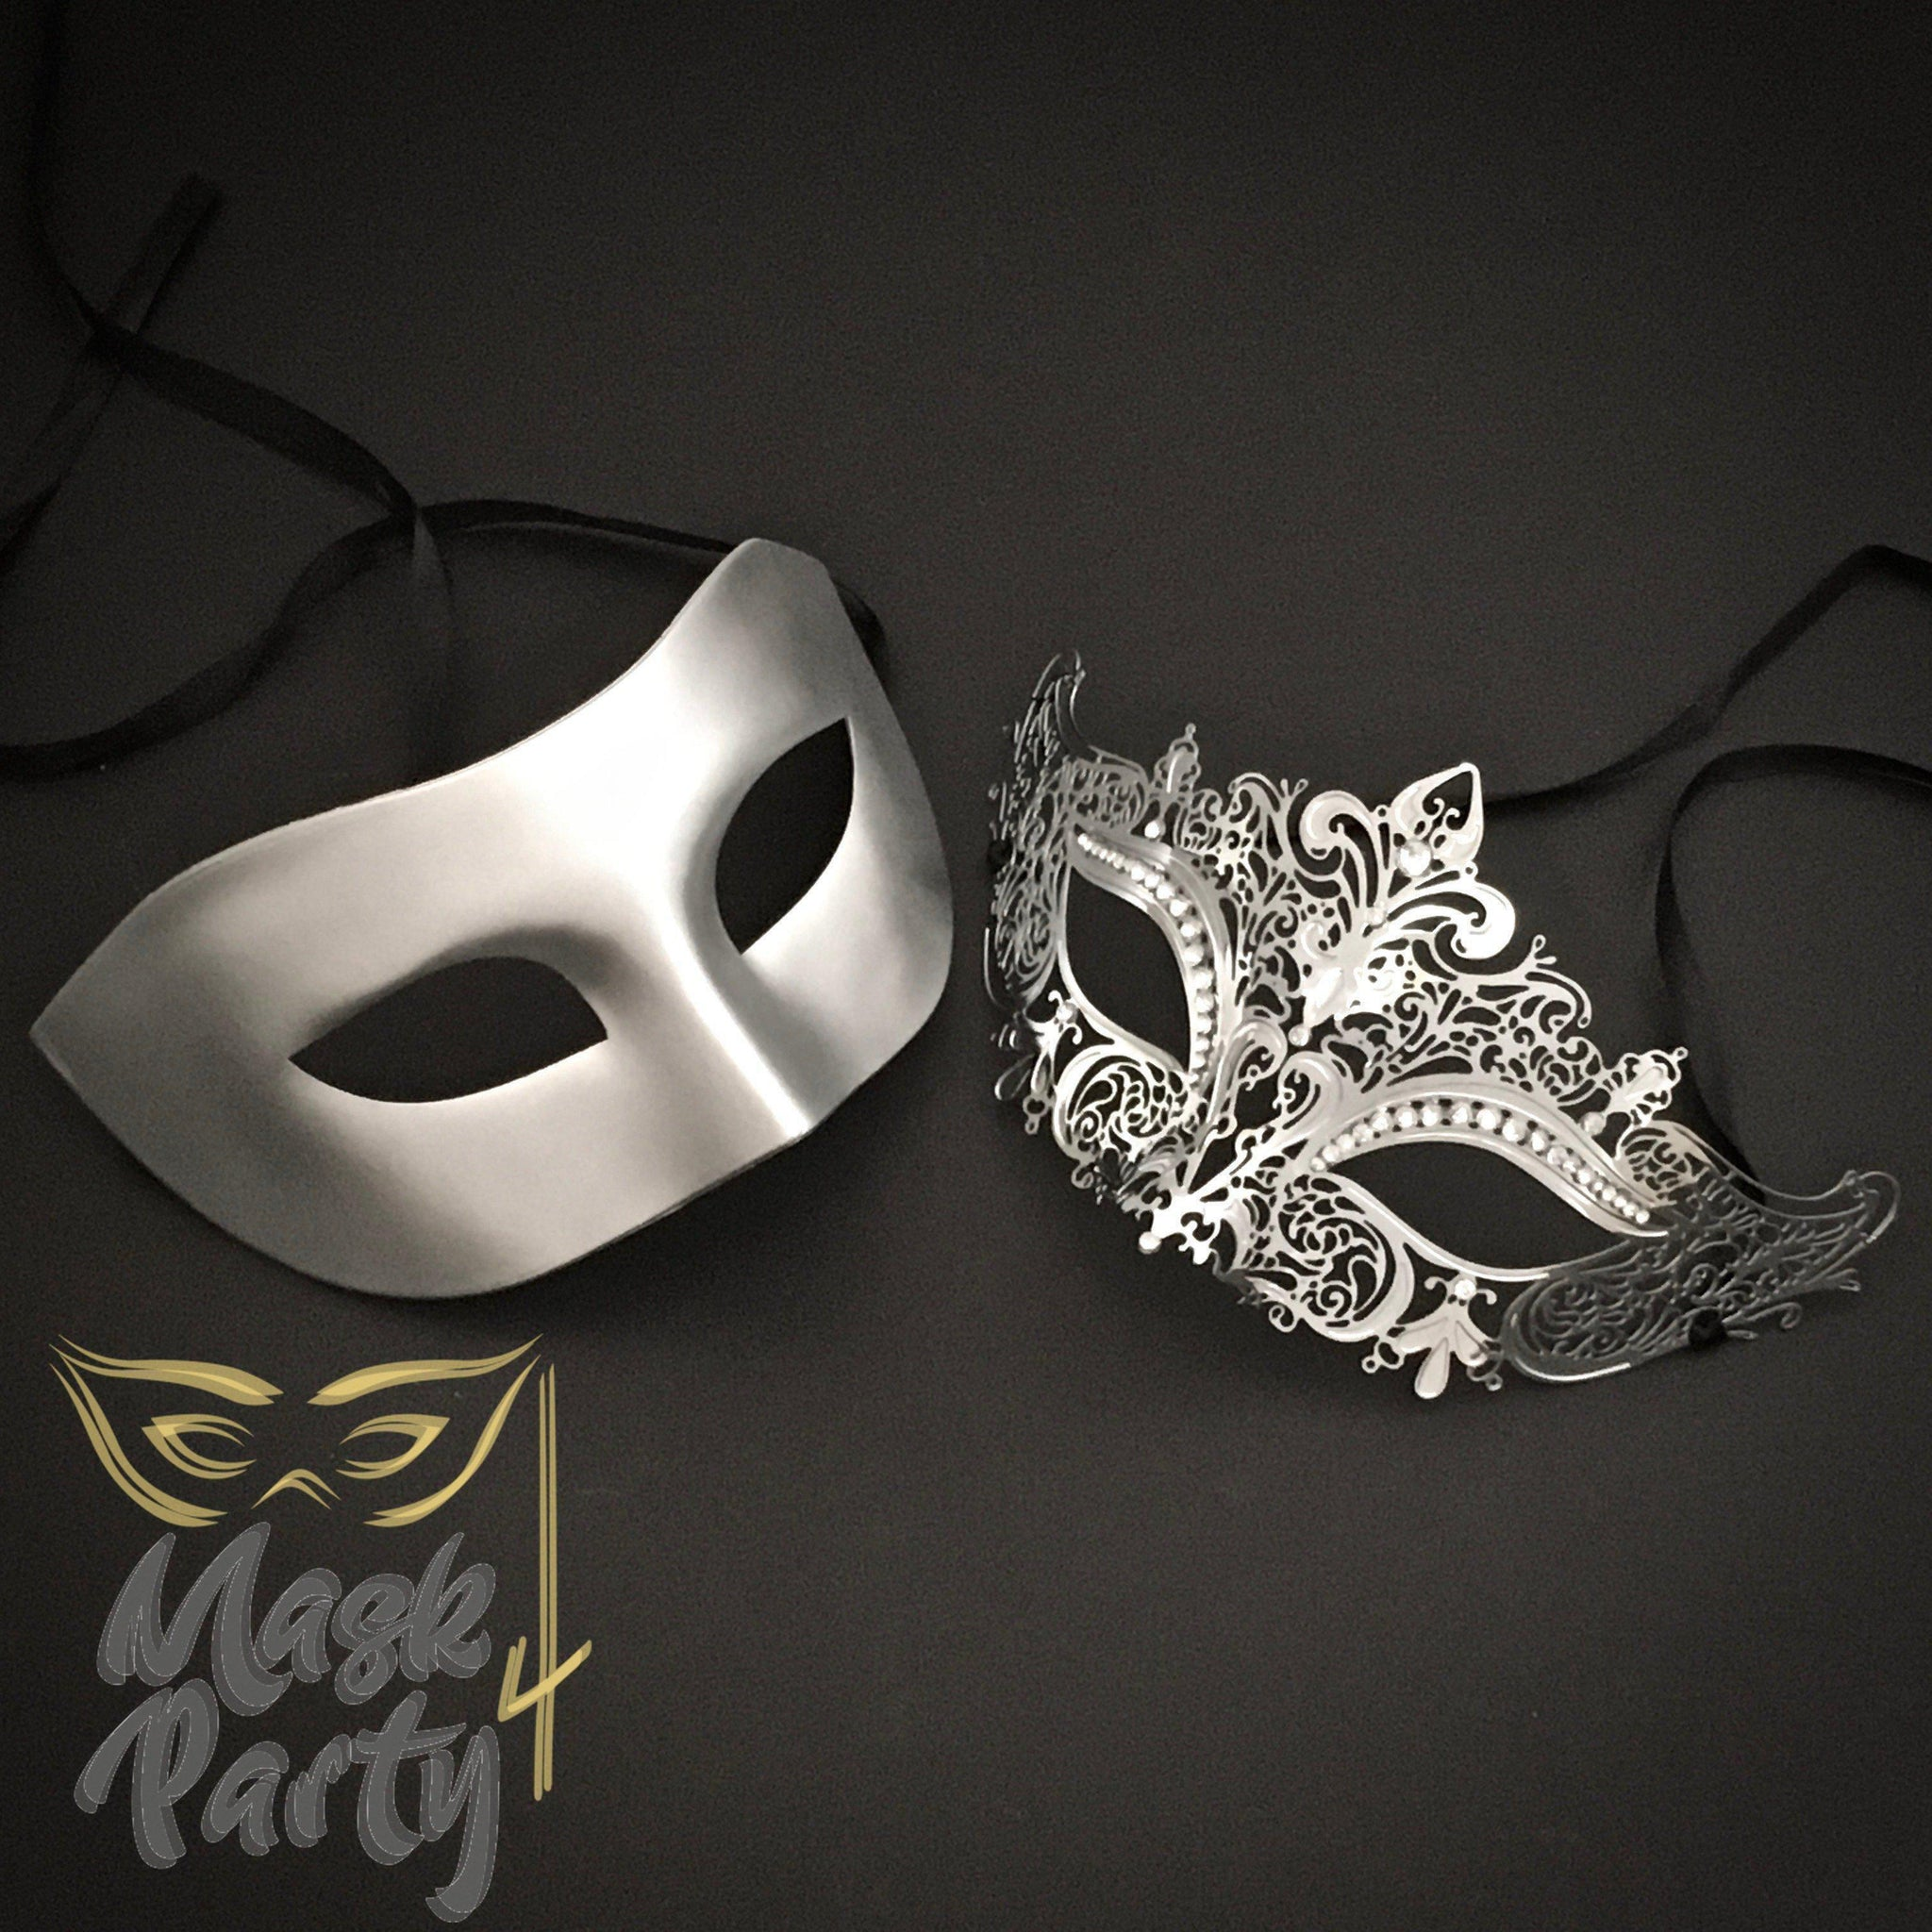 Masquerade Masks - Metallic Eye & Filigree Metal - Silver - Mask4Party